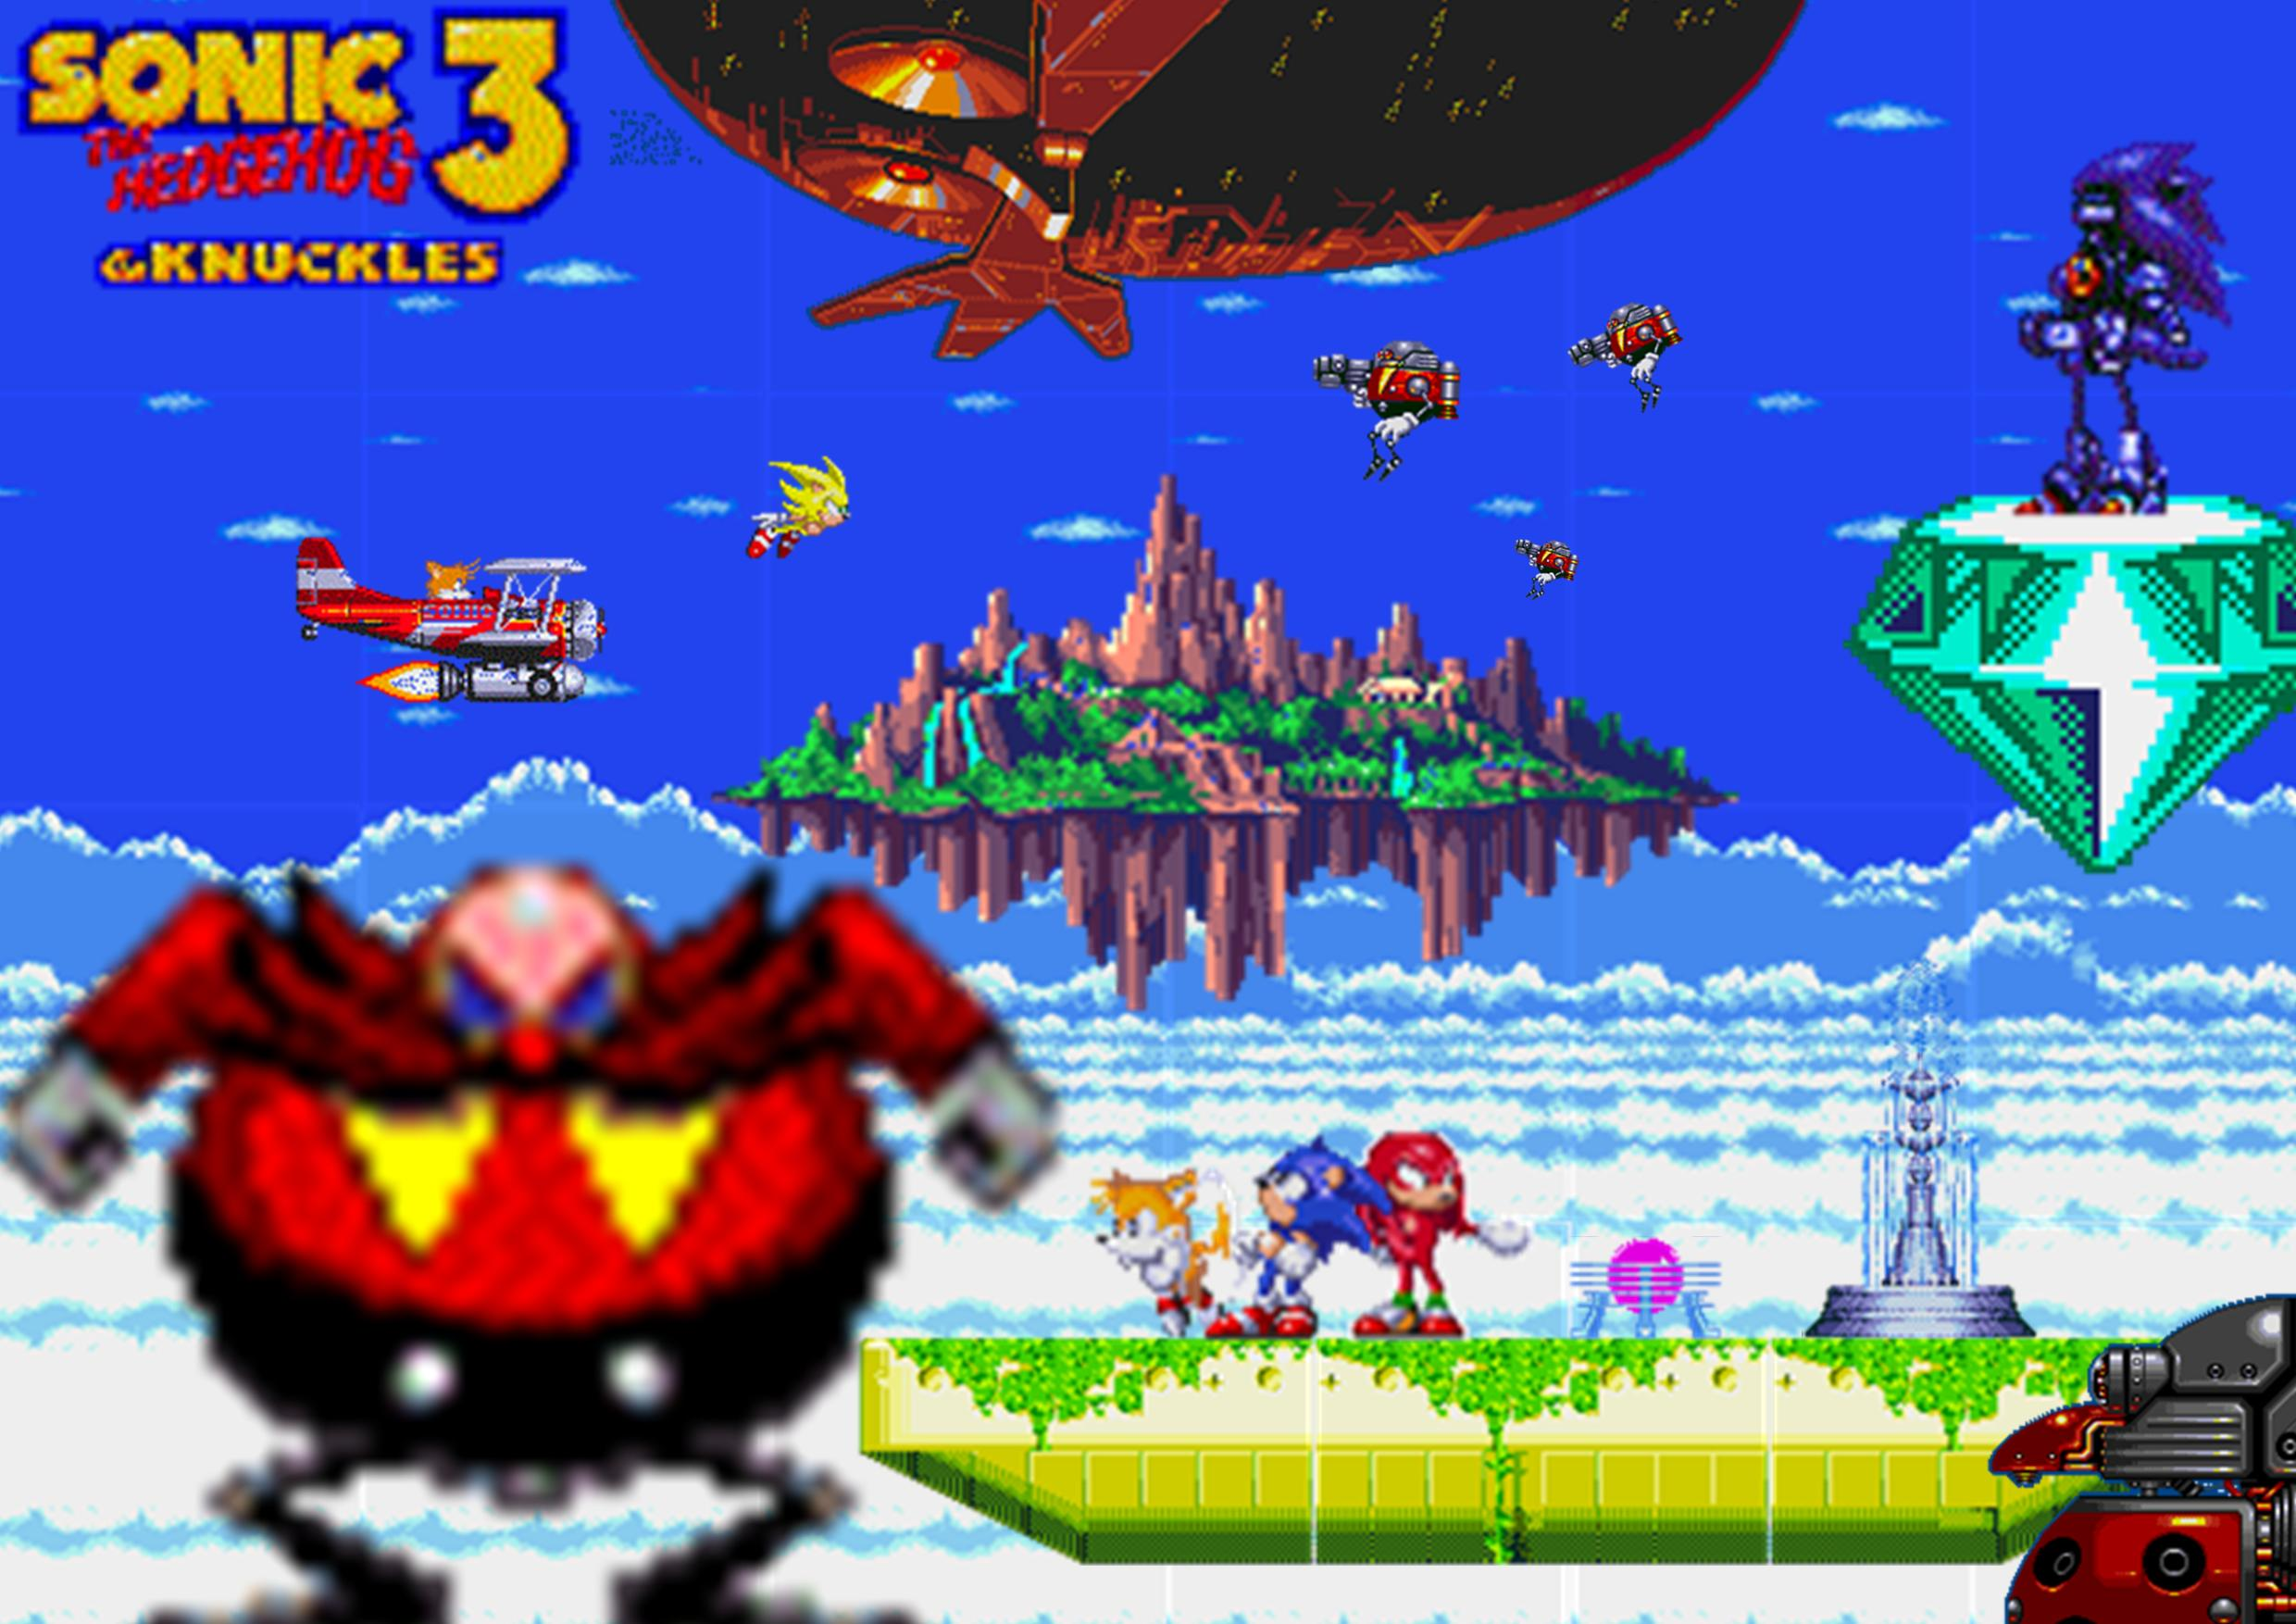 Sonic 3 And Knuckles Wallpaper By Rove1989 On Deviantart